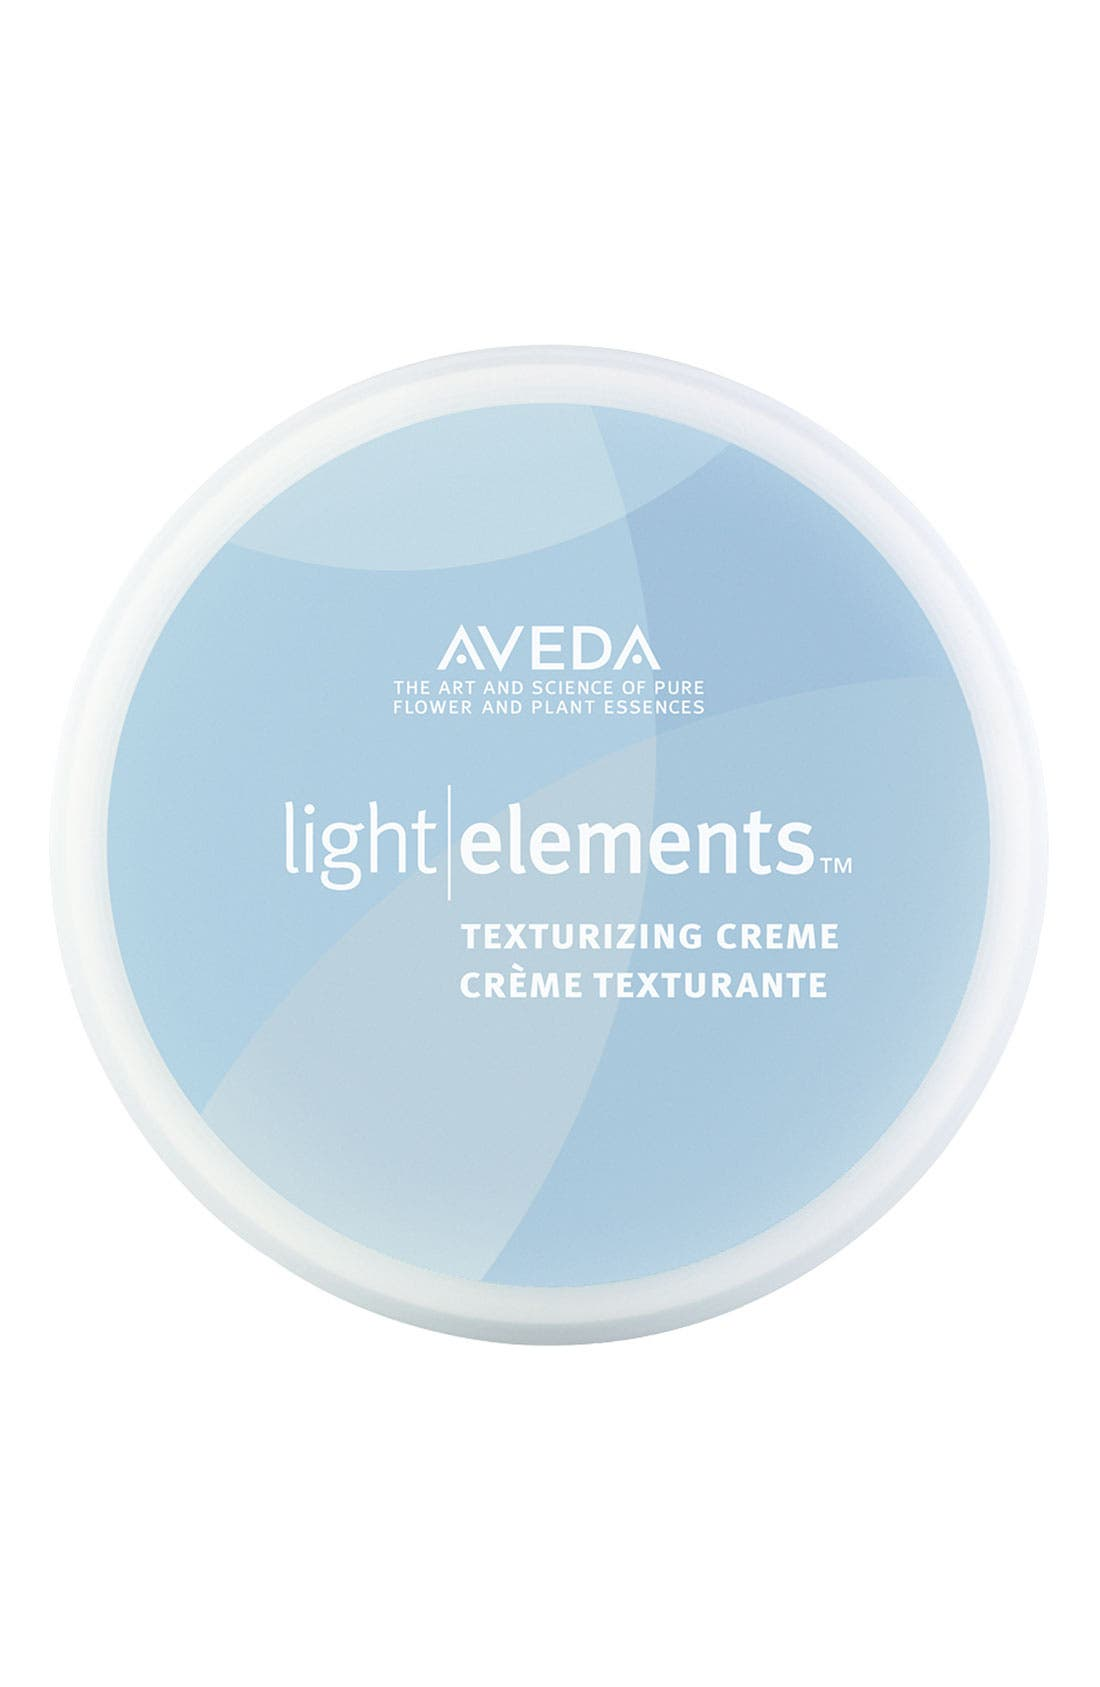 Aveda light elements™ Texturizing Creme